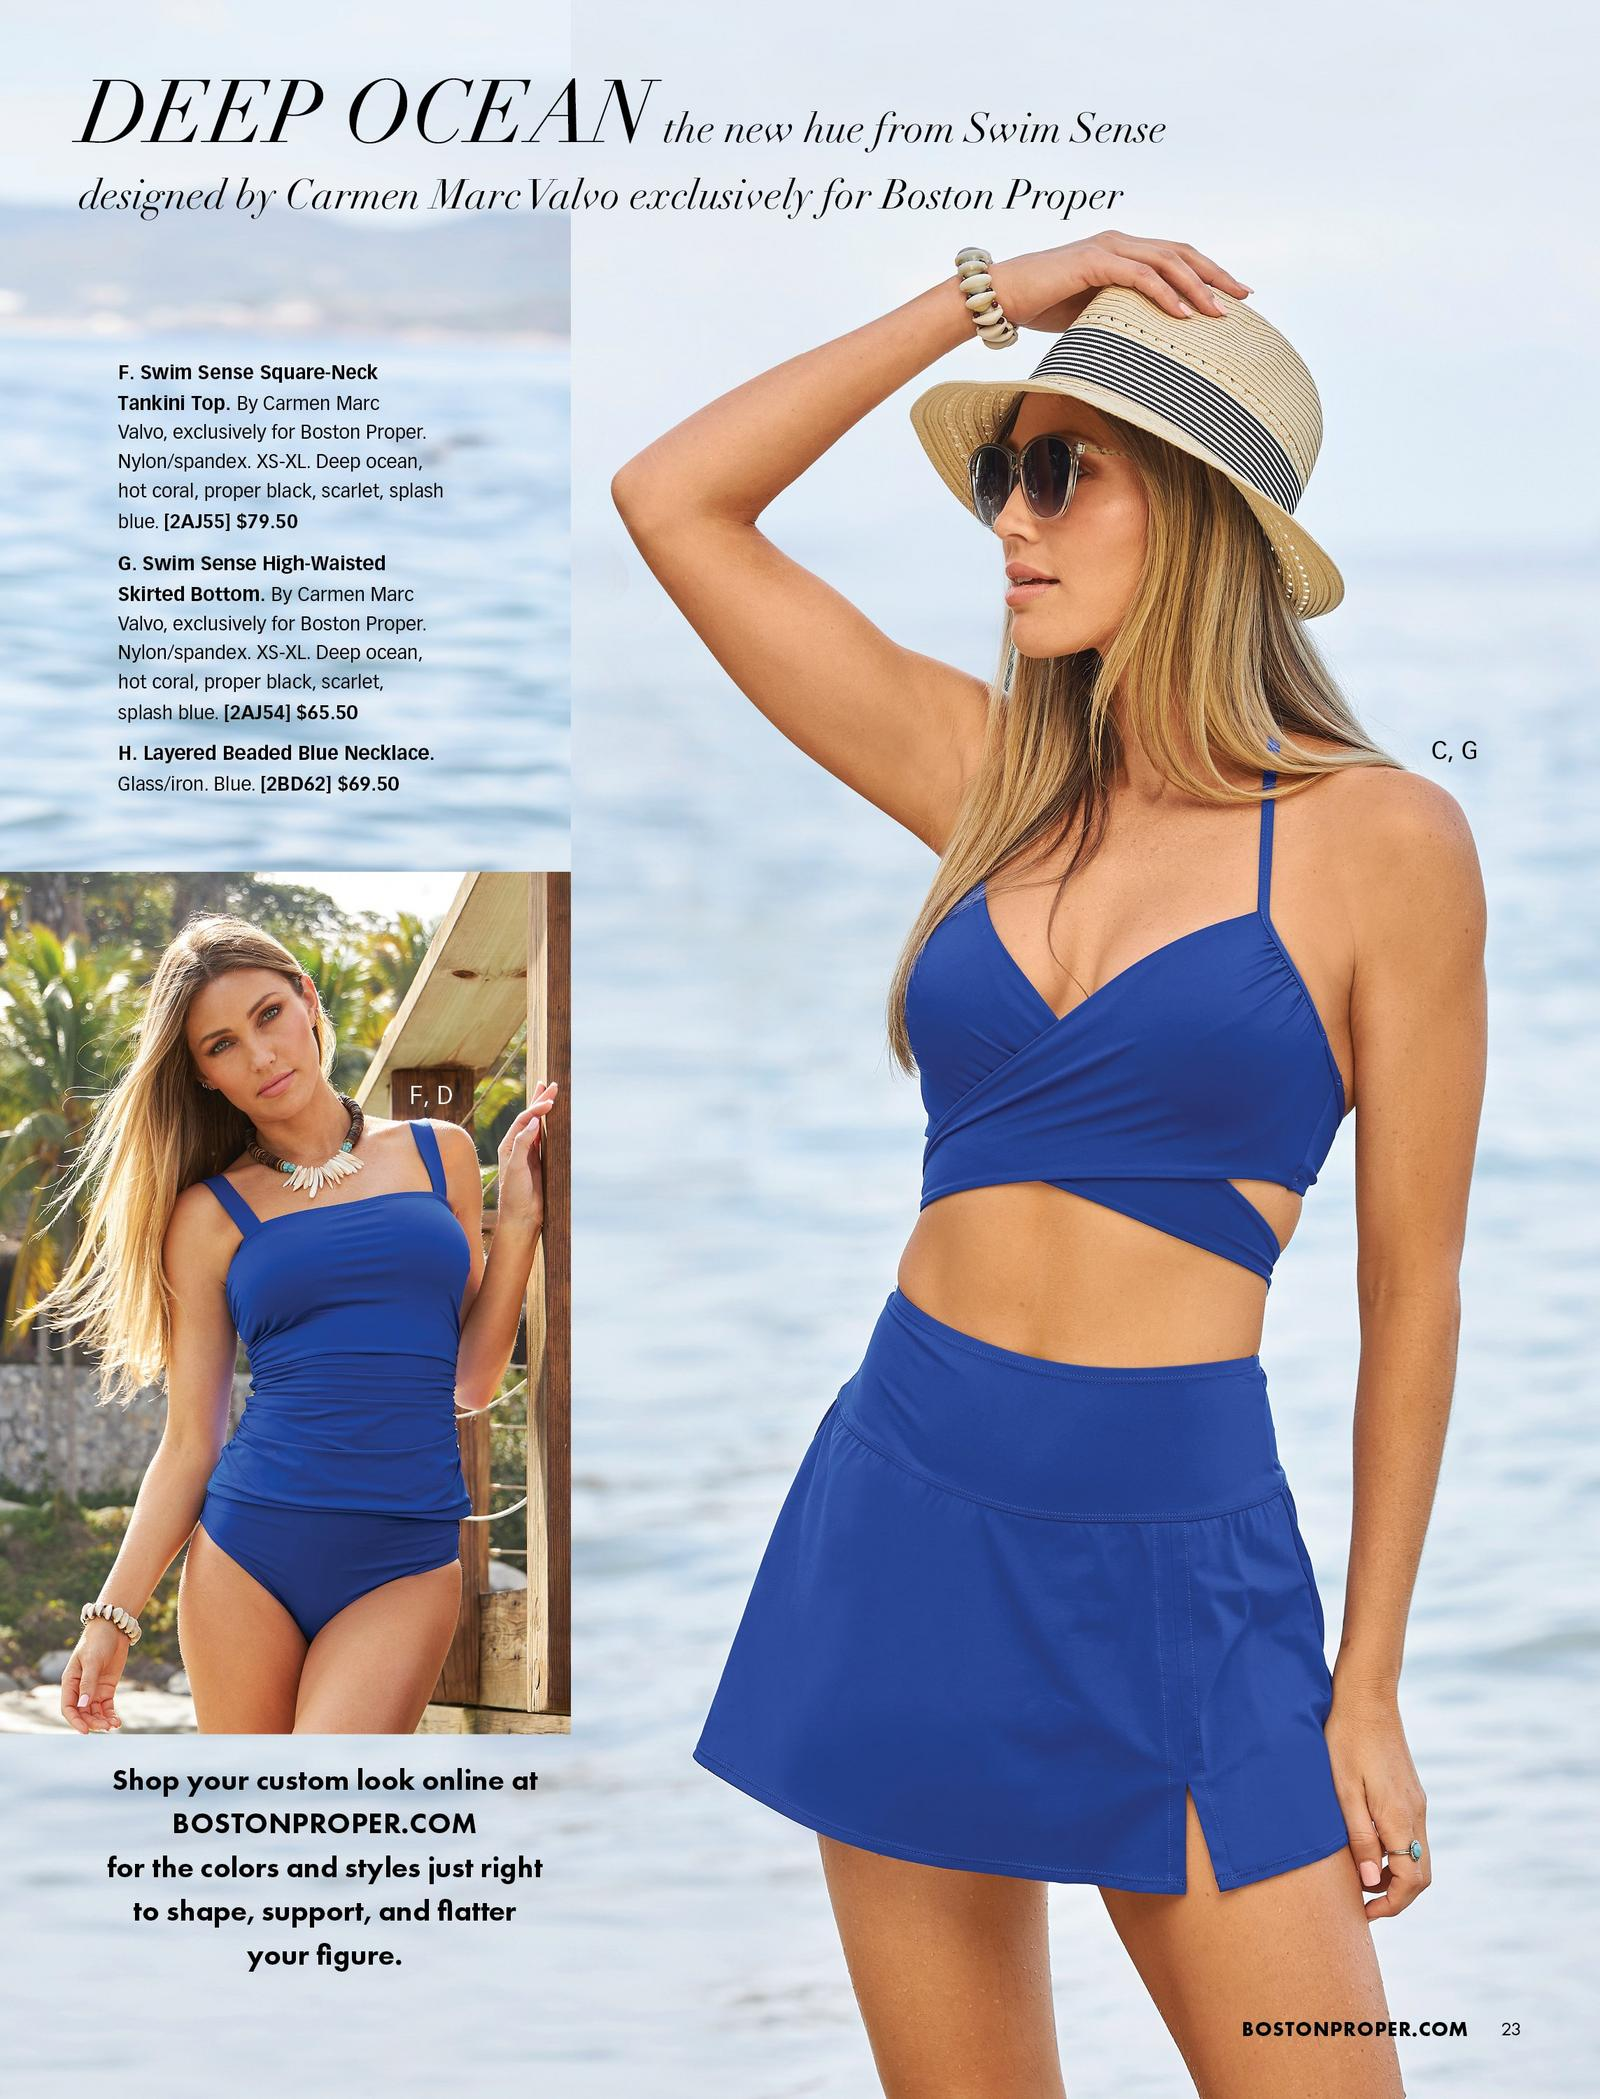 left model wearing a deep ocean blue tankini set. right model wearing a deep ocean blue bikini top and skirted bottom set, straw hat, and sunglasses.